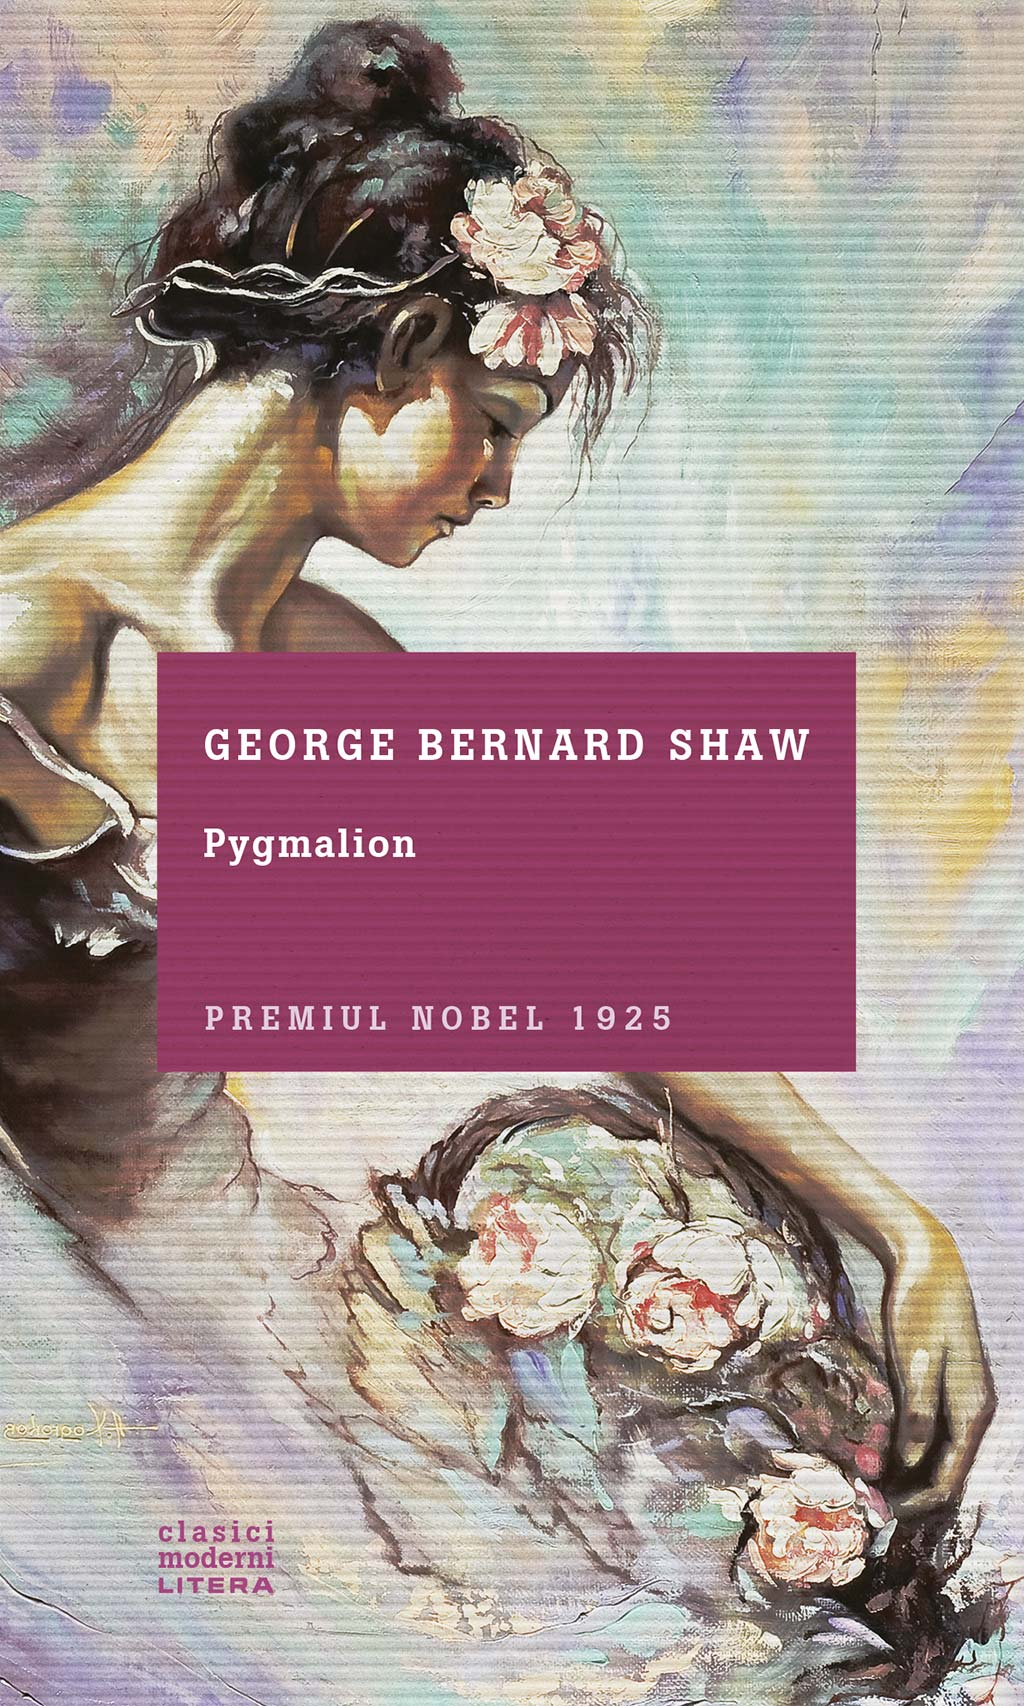 an analysis of pygmalion a play by george bernard shaw Pygmalion by george bernard shaw home / literature / pygmalion /  pygmalion analysis literary devices in pygmalion symbolism, imagery, allegory  made in his imageoooh, this is a juicy oneshaw wrote pygmalion in 1912, but he took its name from something way, way older: an.